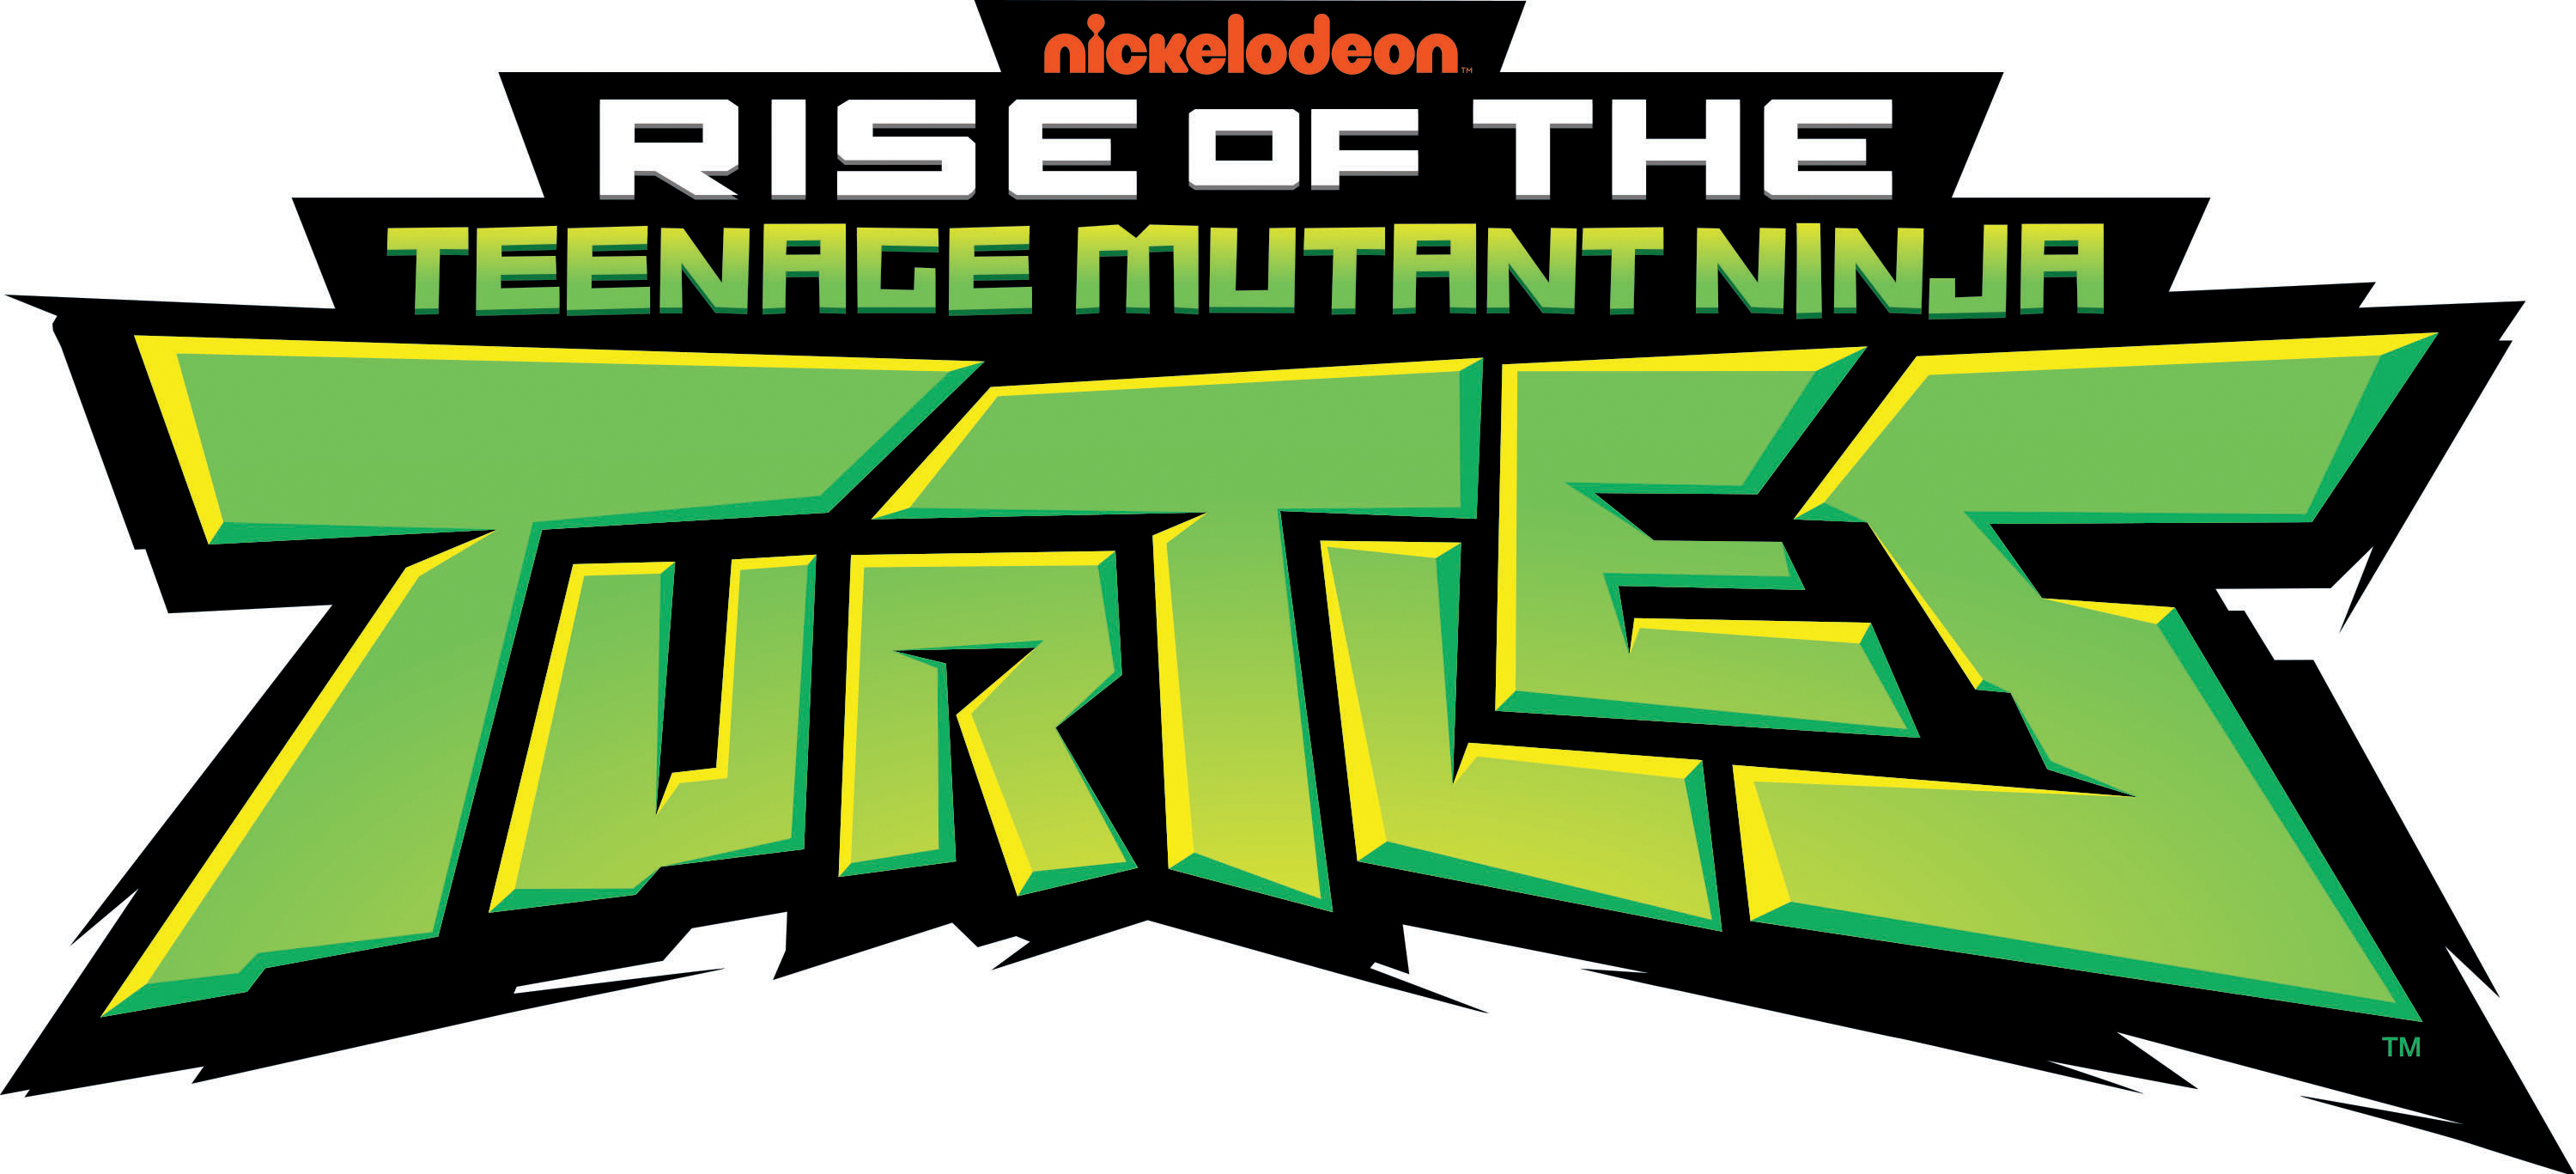 Nickelodeon's Rise of the Teenage Mutant Ninja Turtles Toys are Coming October 1 from Playmates Toys